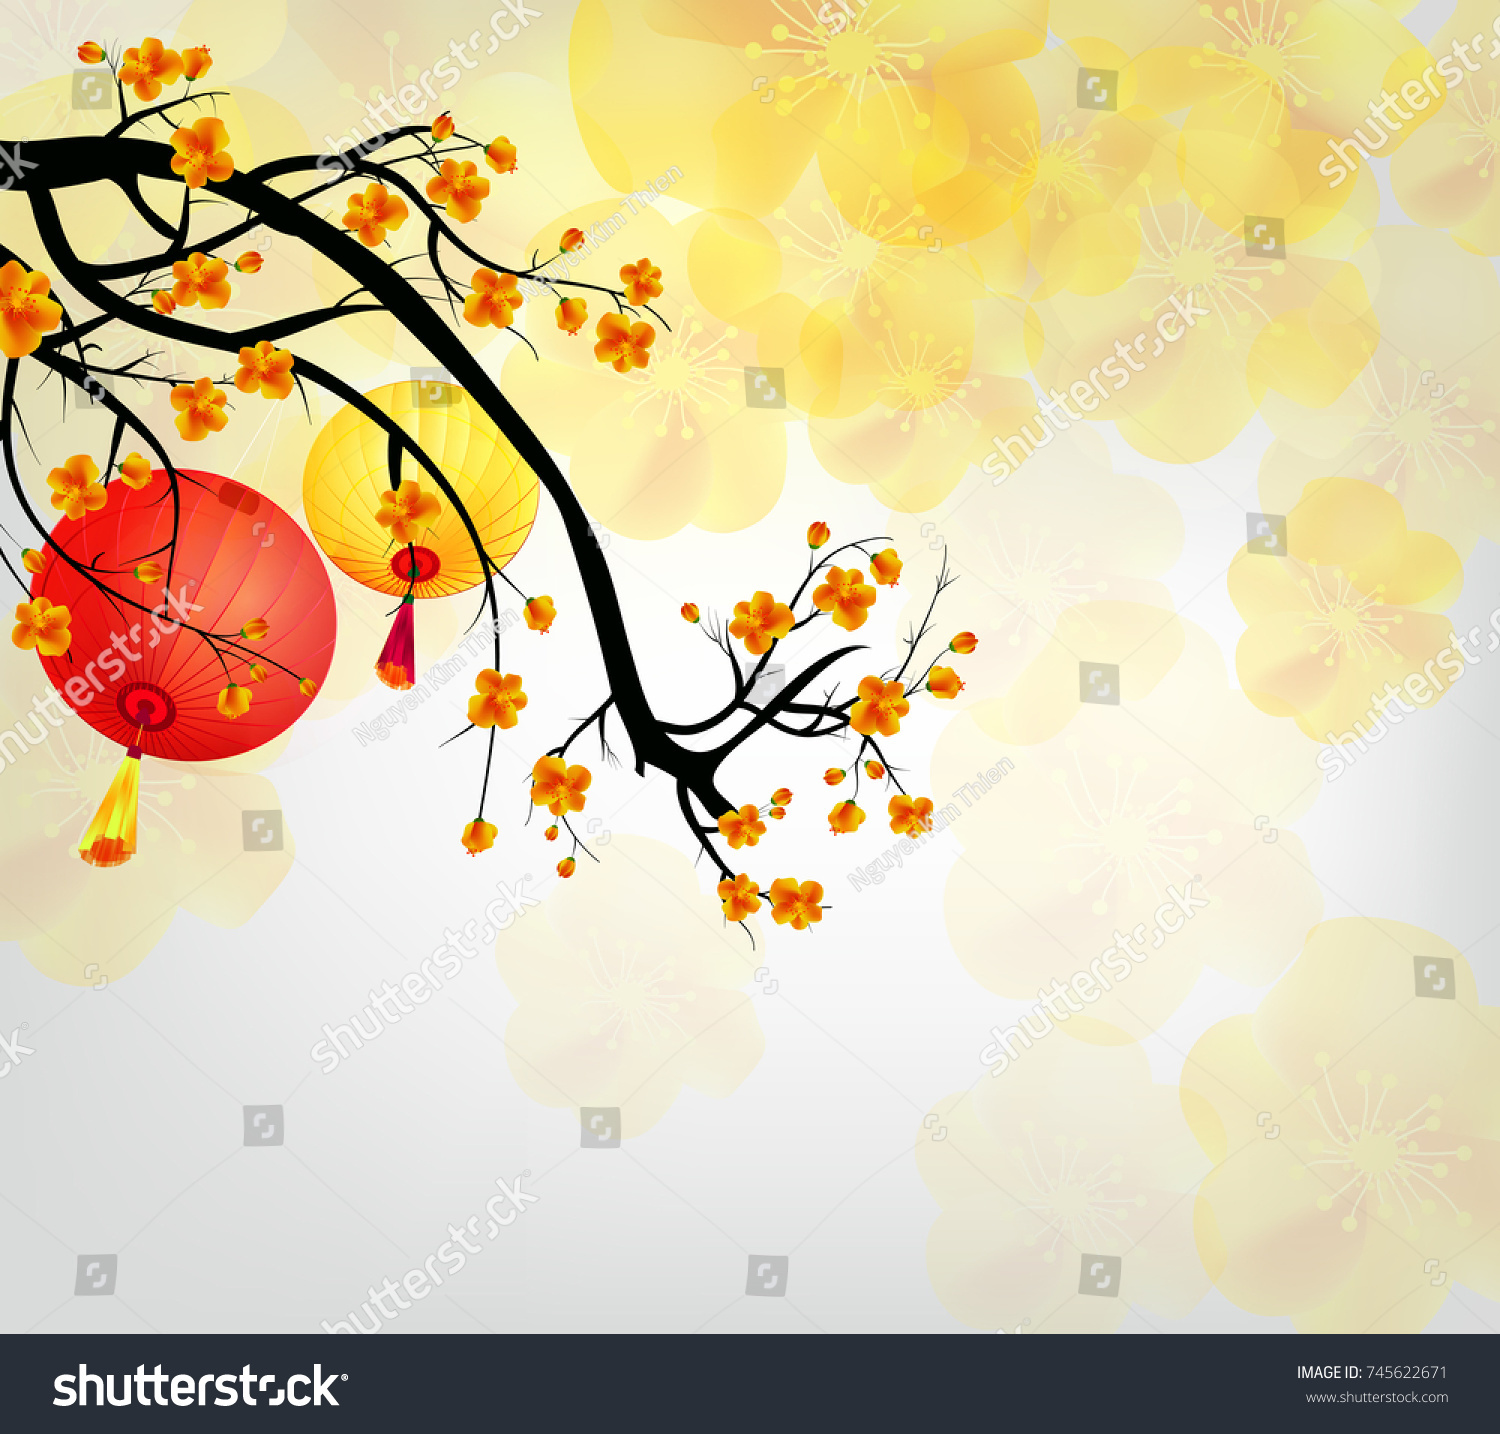 cherry blossom for chinese new year and lunar new year 2018 new year with background